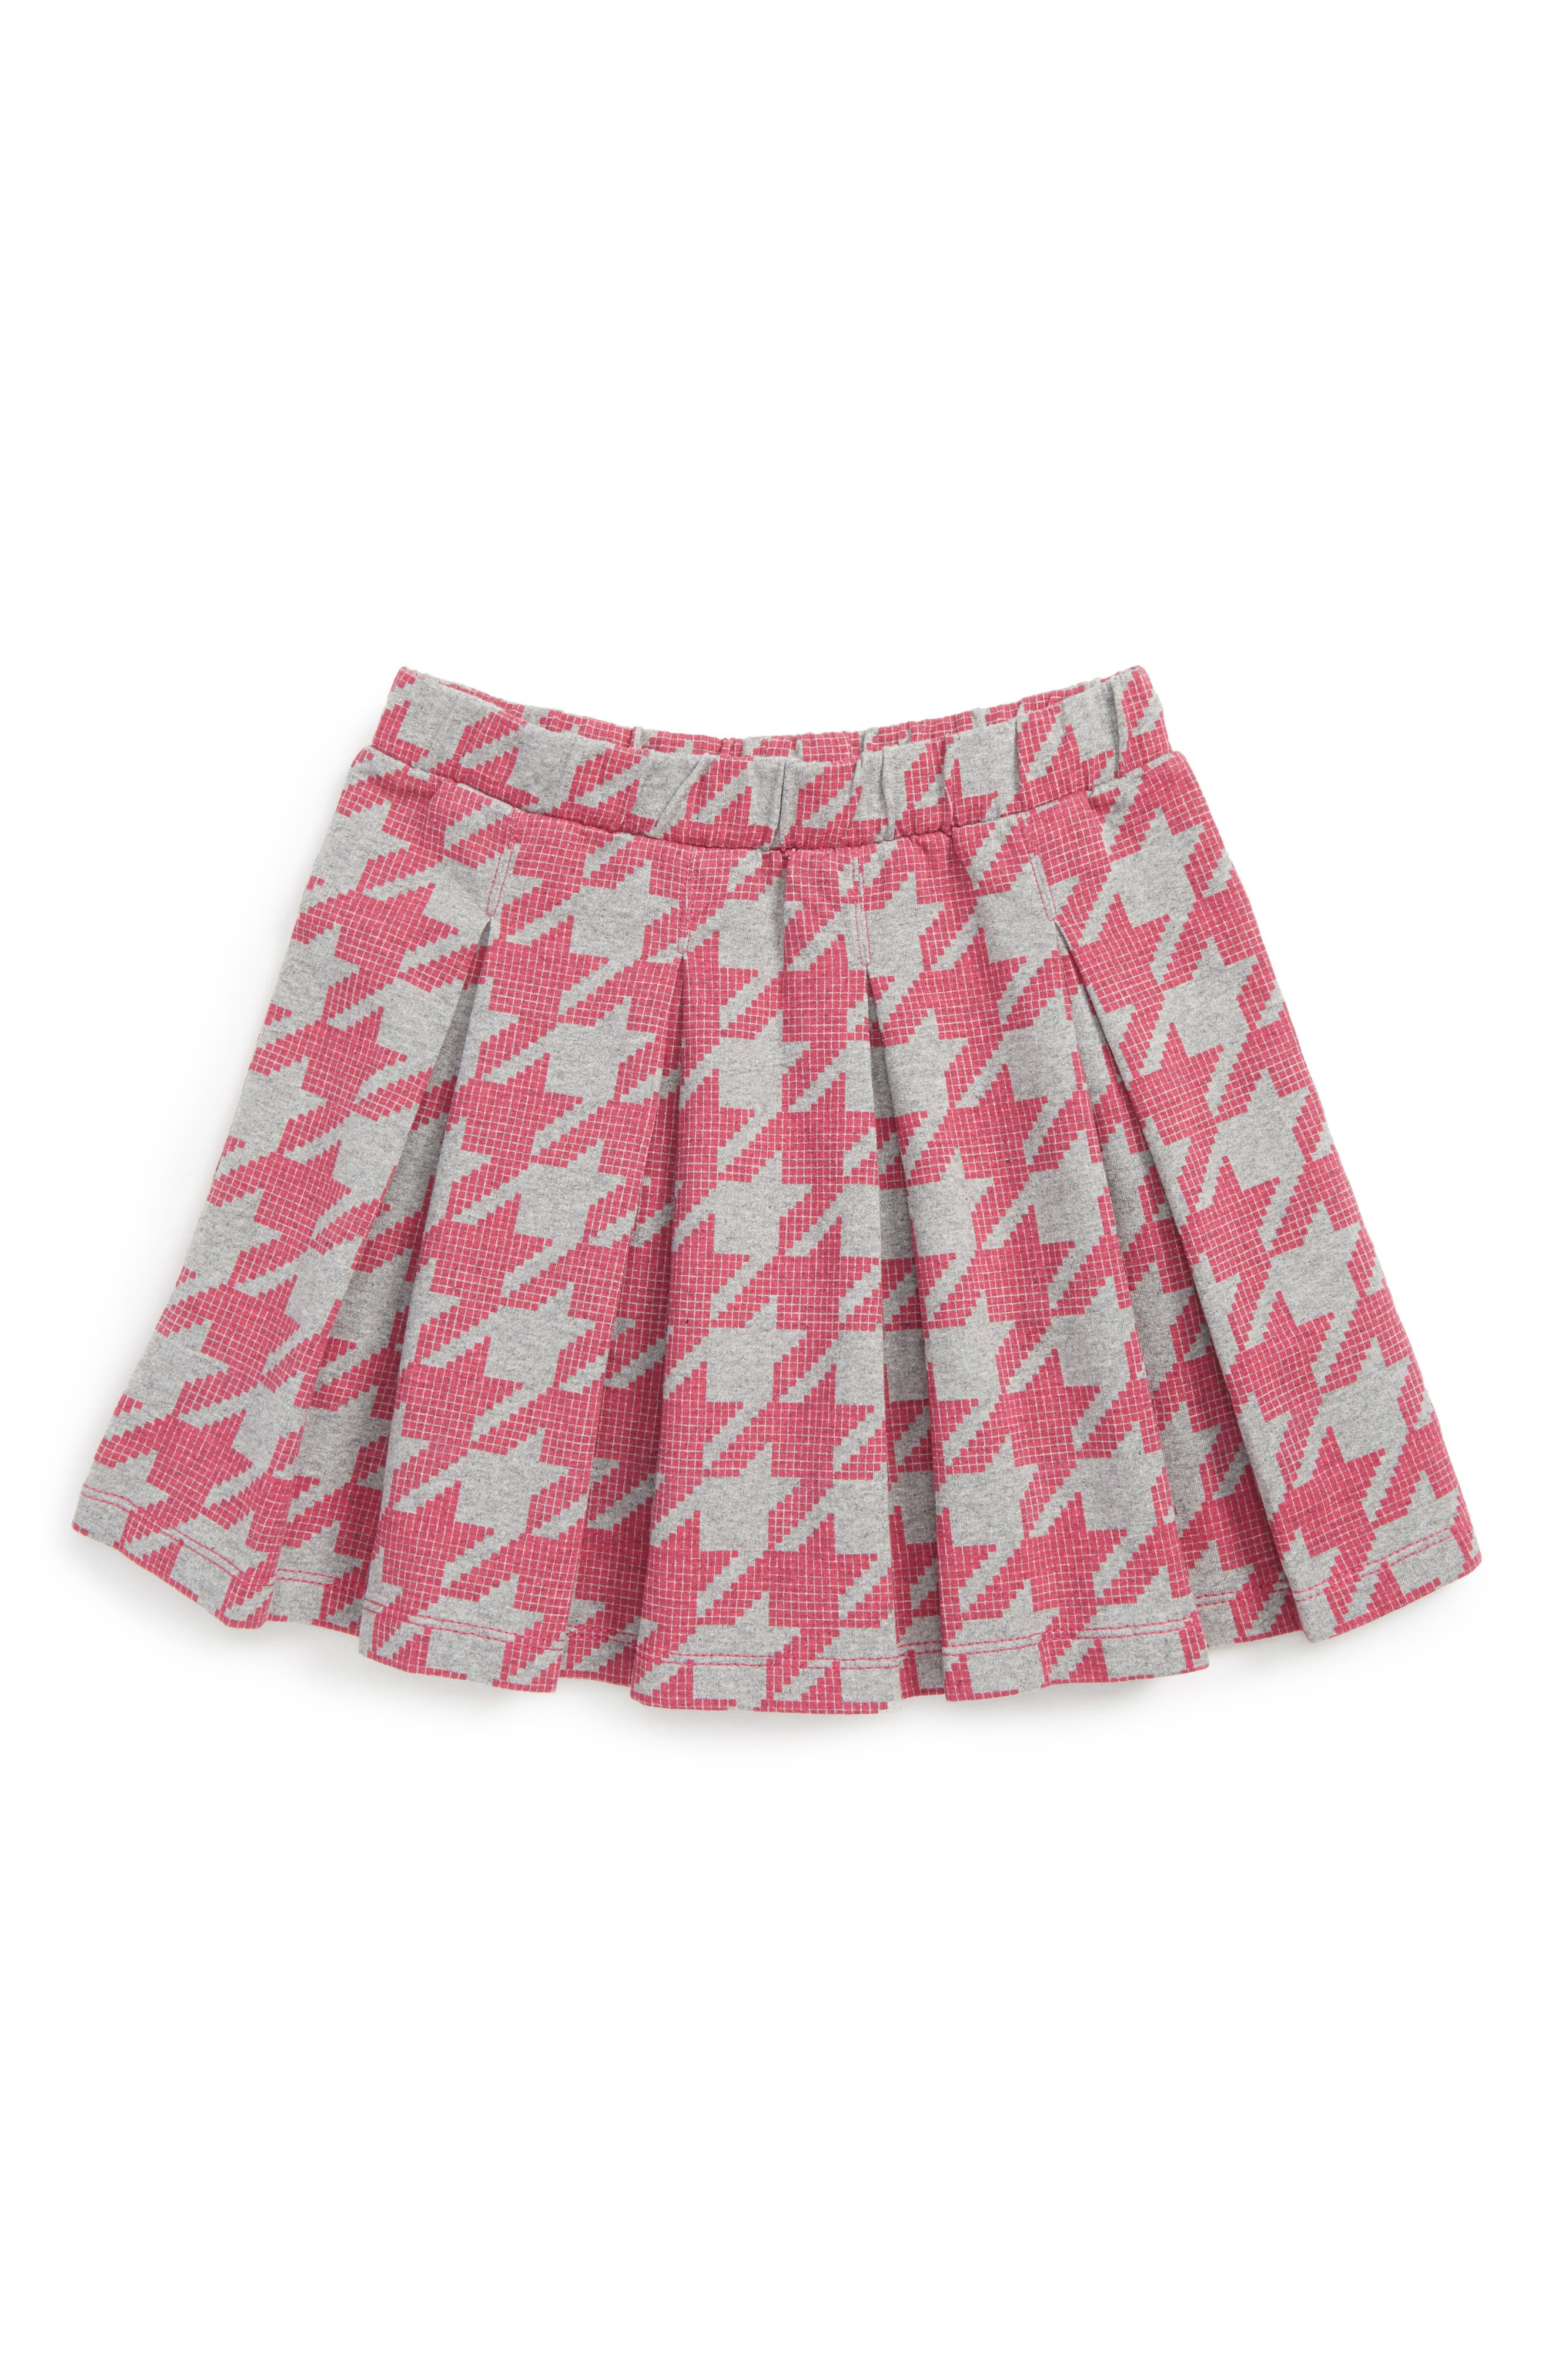 Houndstooth Skirt,                         Main,                         color, 651